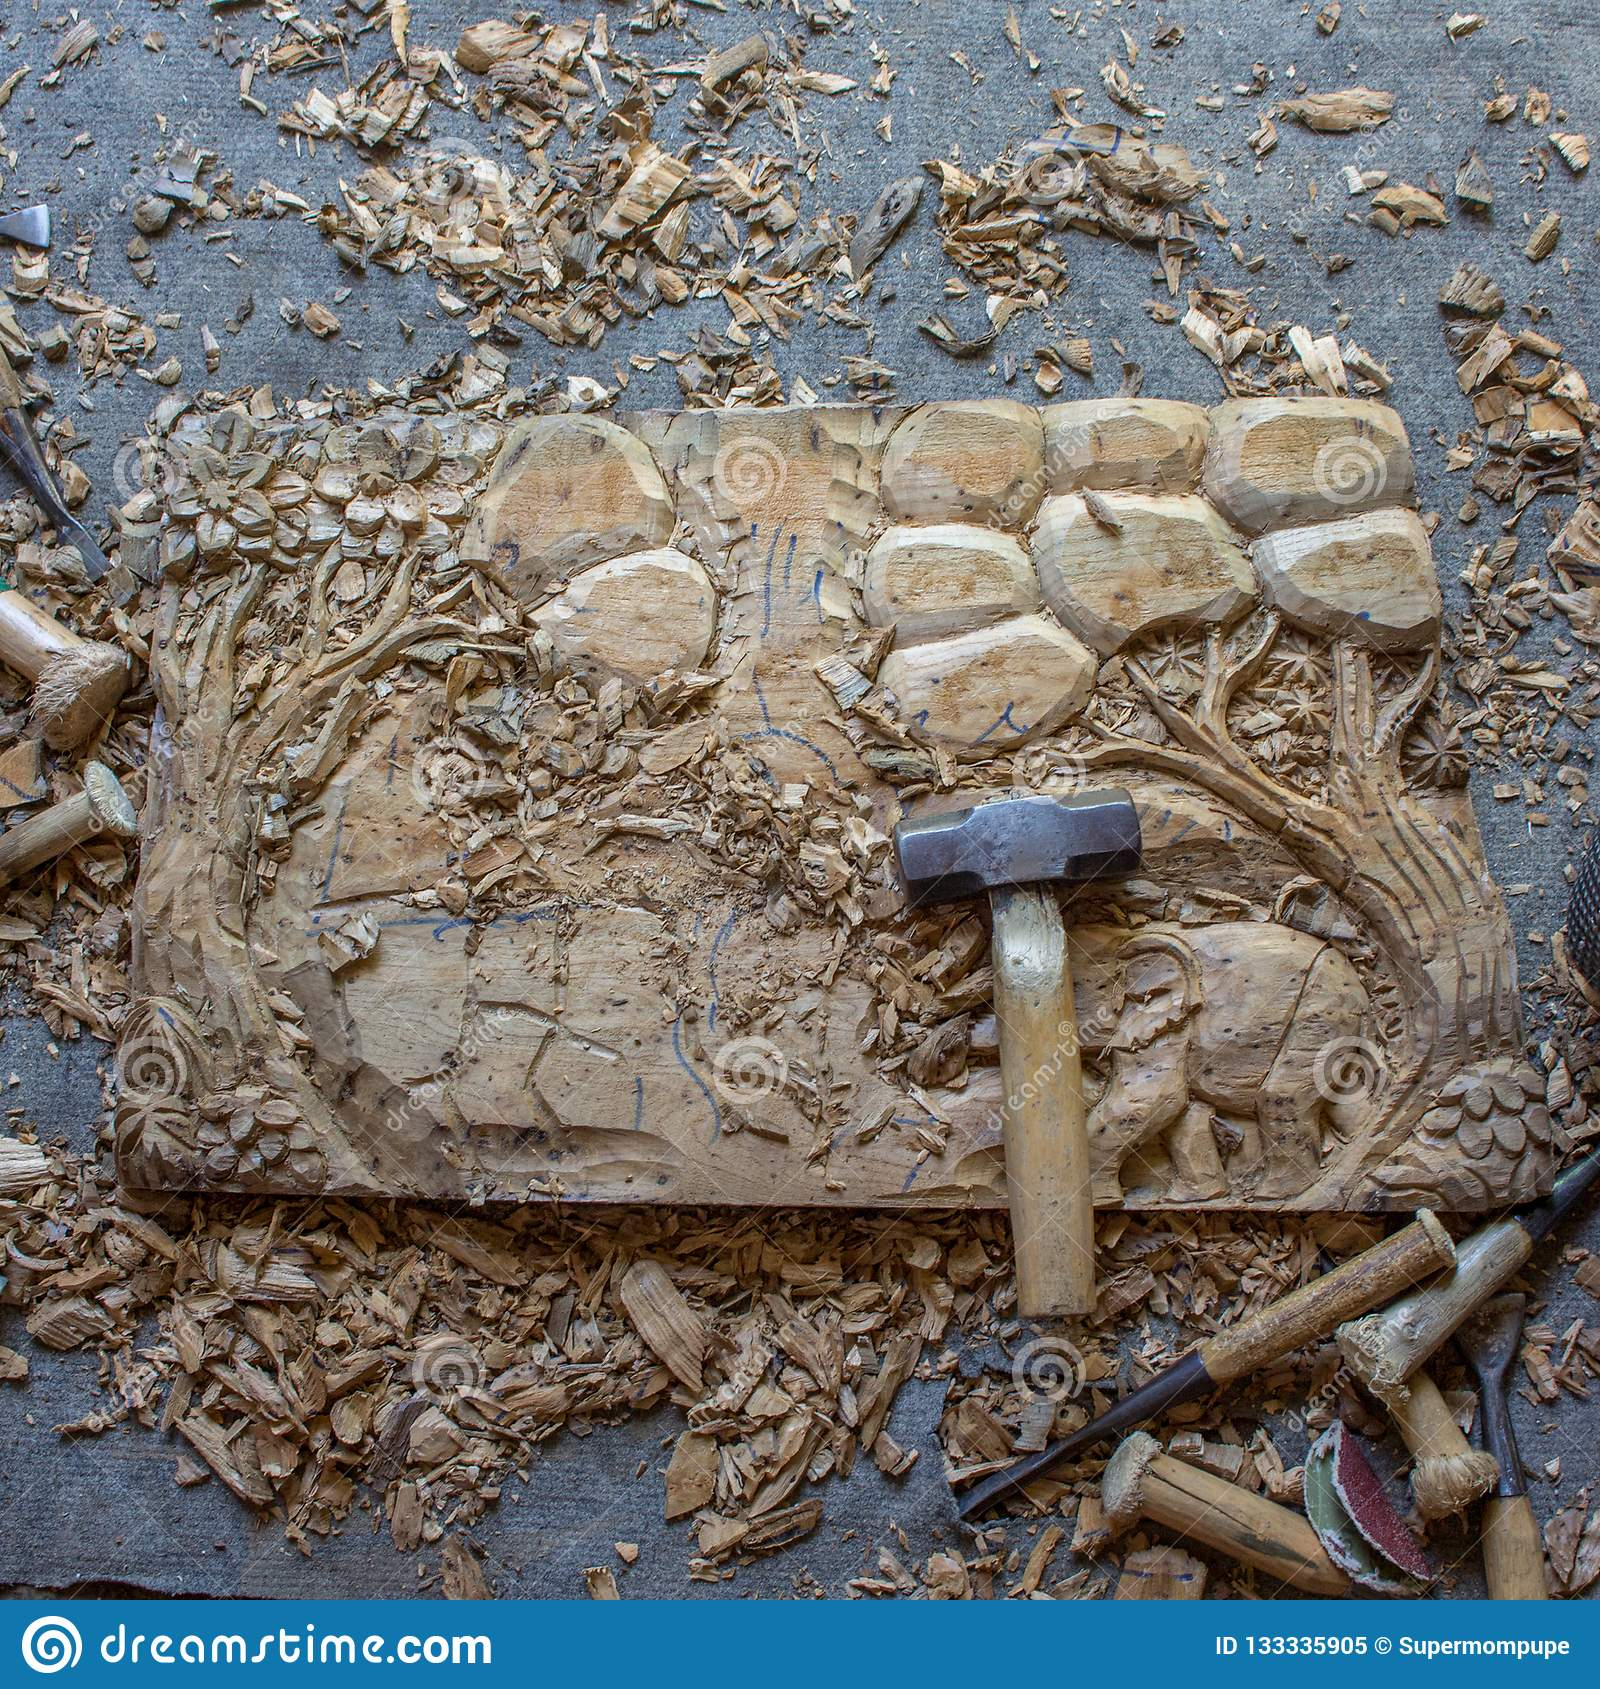 The Process Of Wood Hand-Carving Elephants 3D Wood Hand